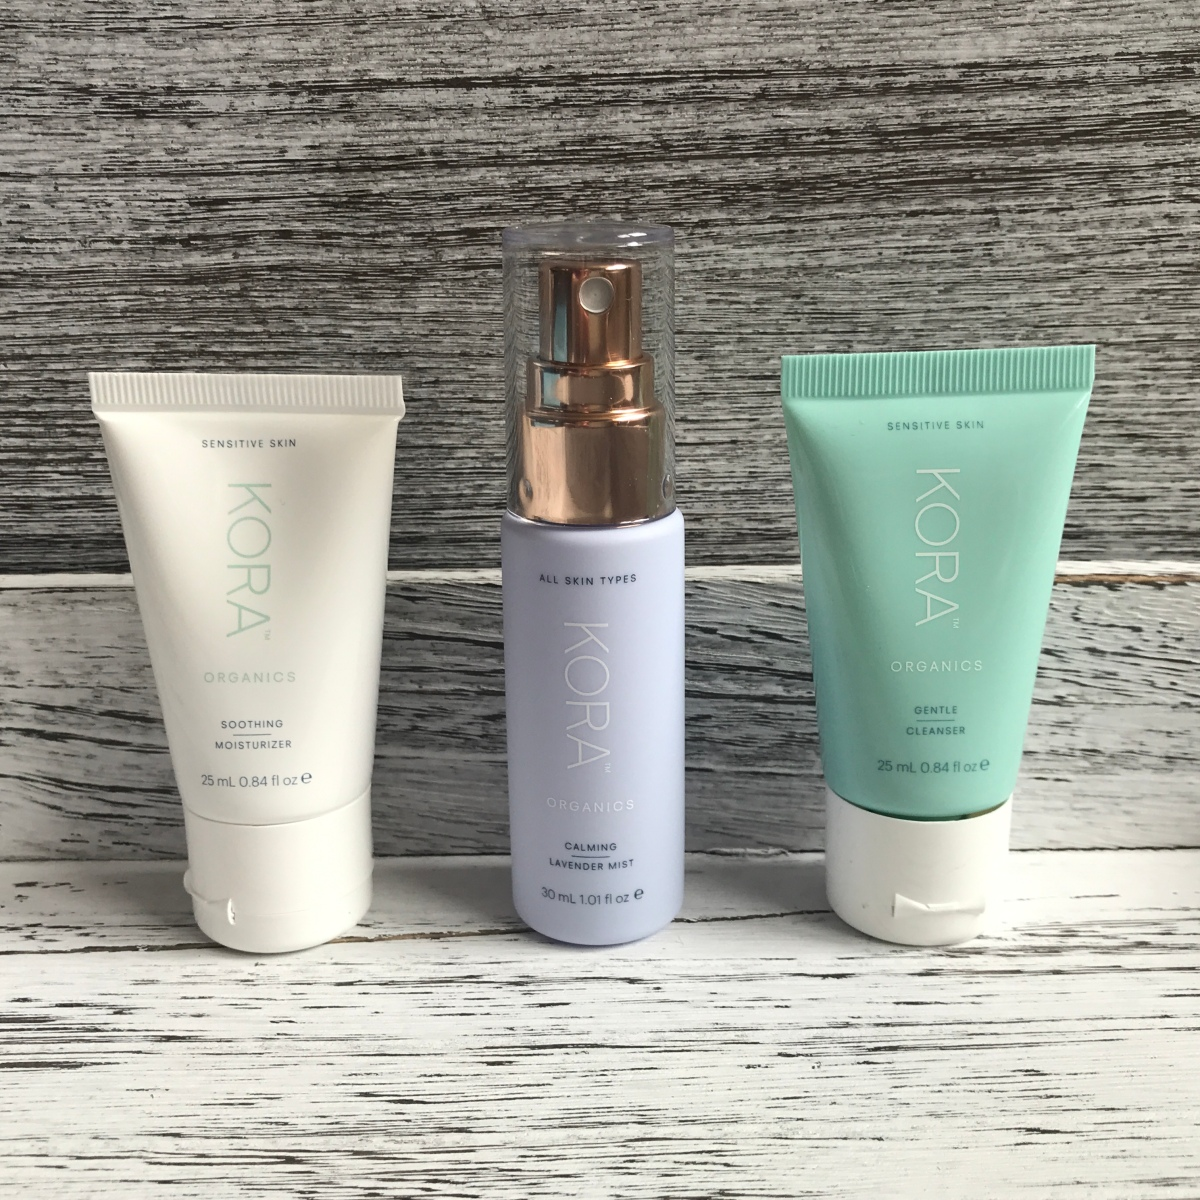 KORA ORGANICS Daily Ritual Kit for Sensitive Skin - Unboxing